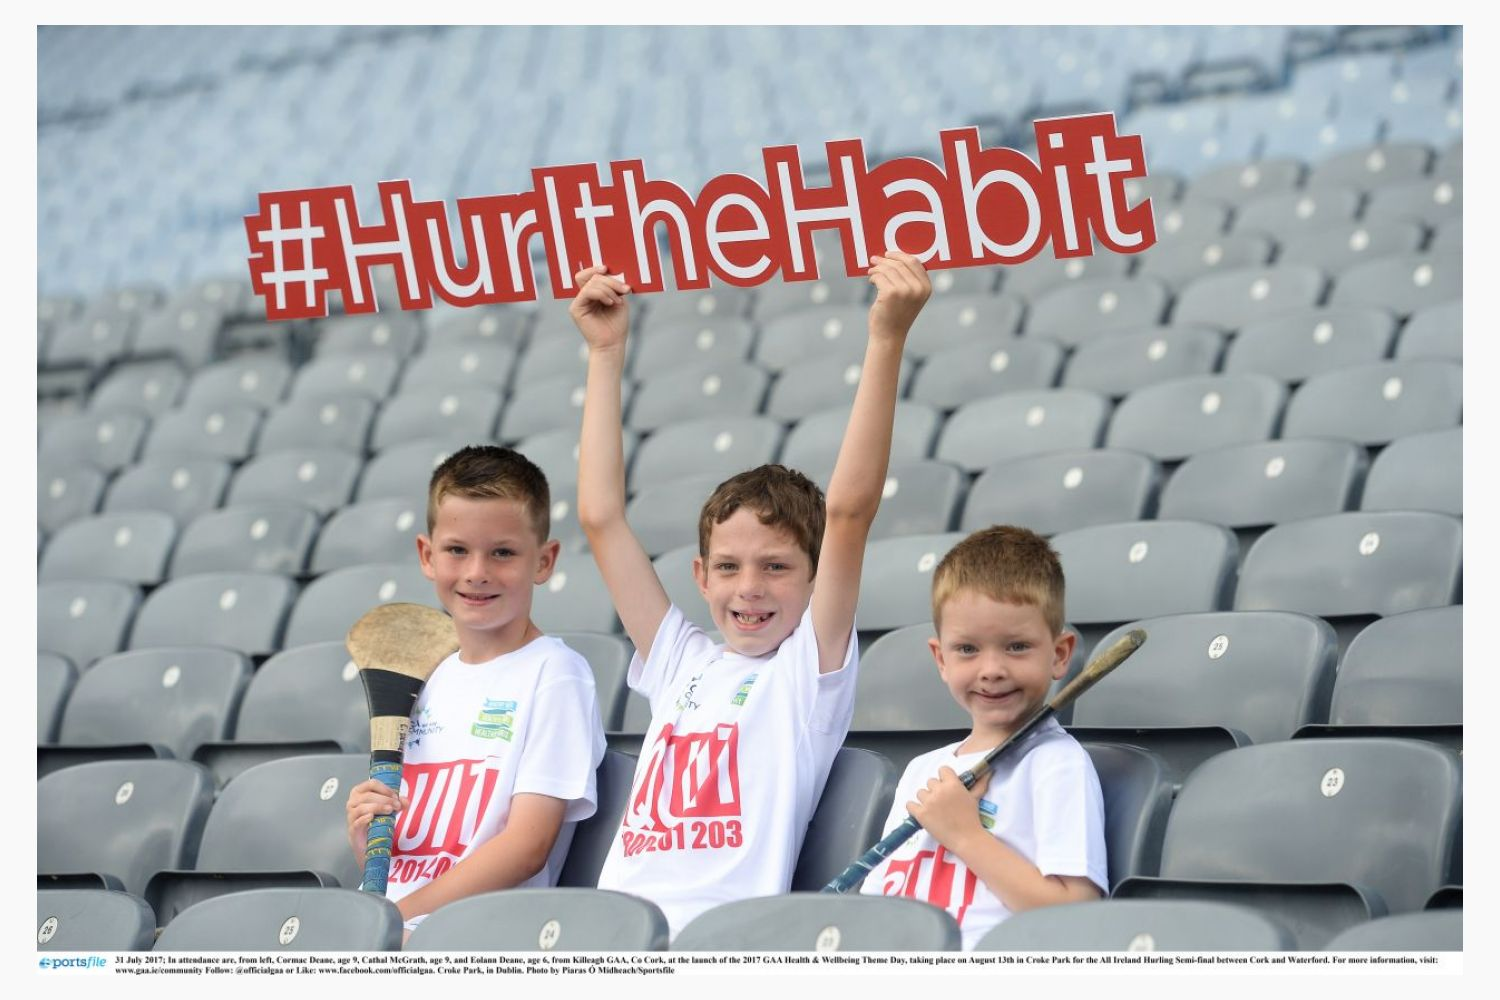 #HurltheHabit -Together we'll win